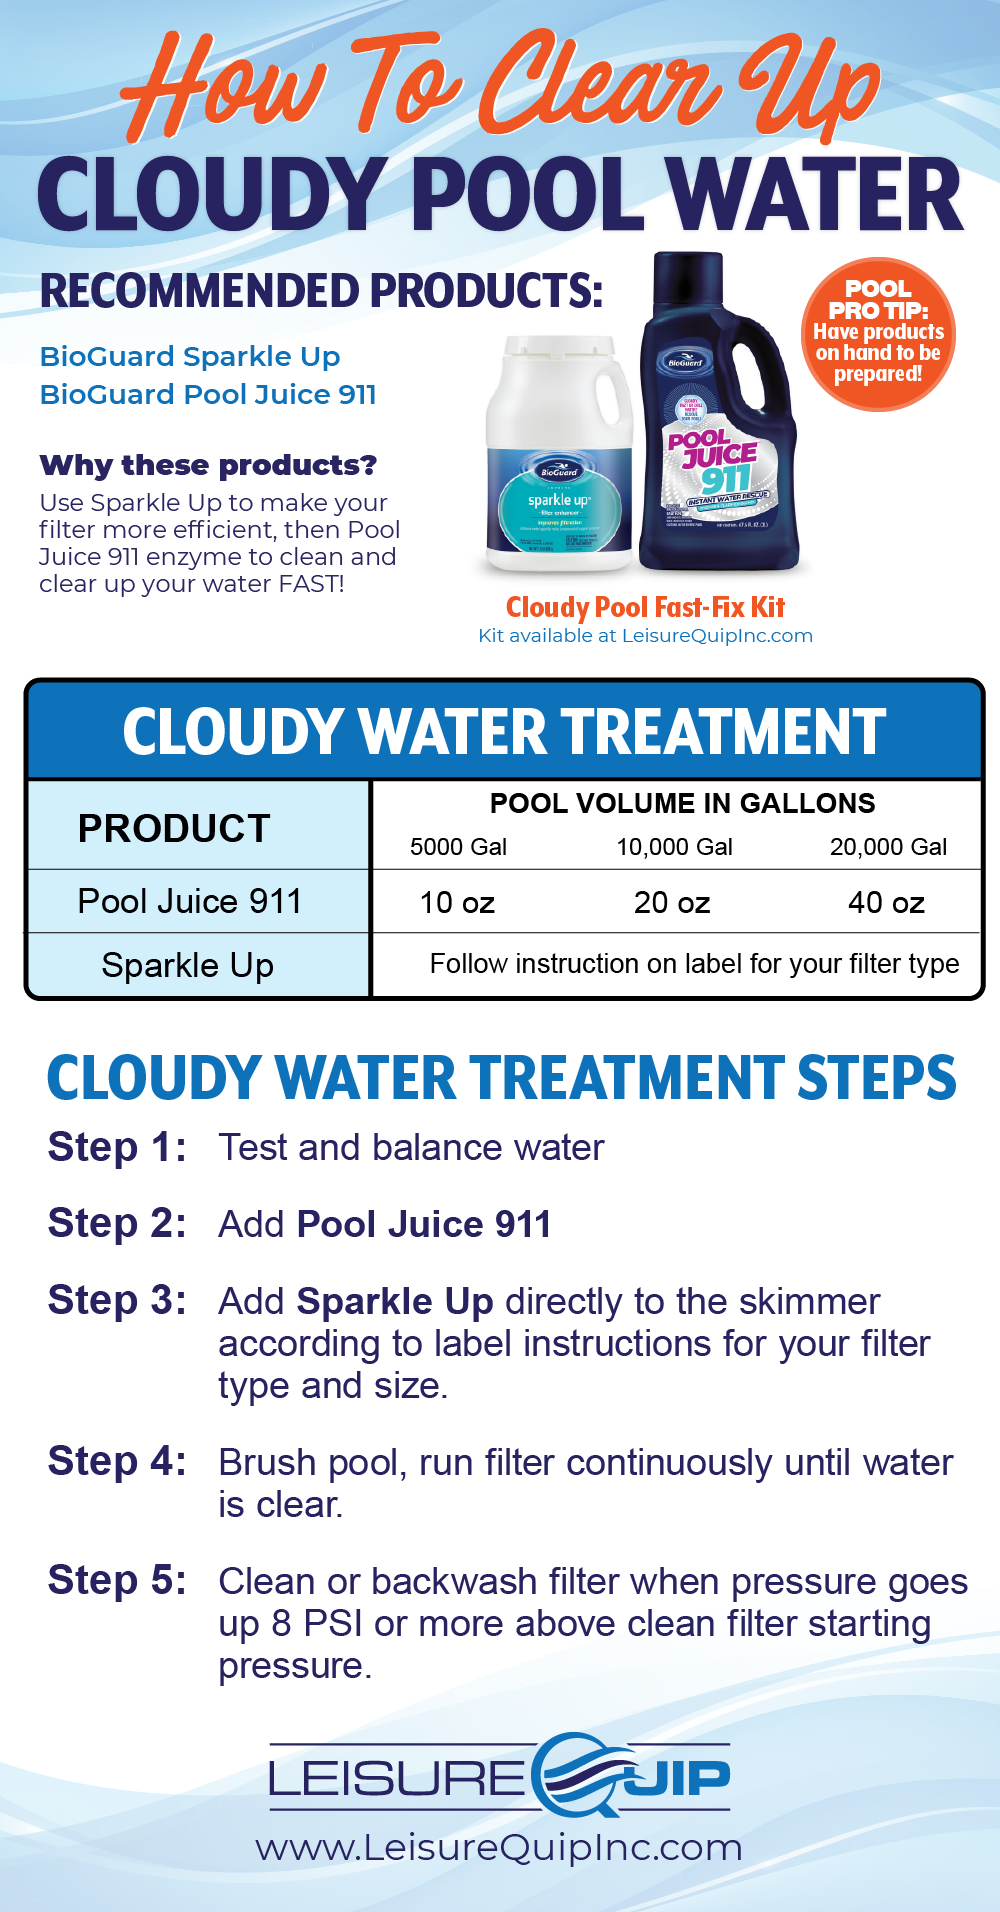 Clear up cloudy pool water